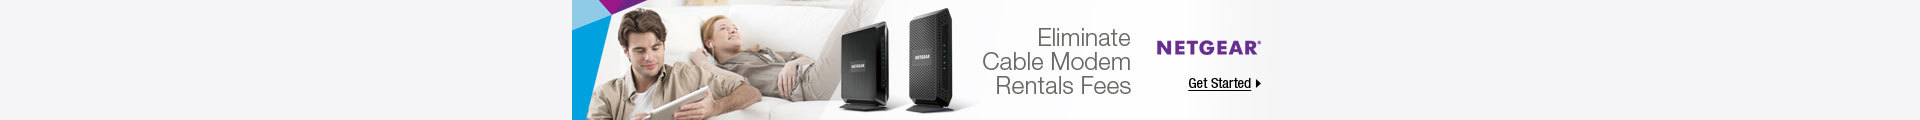 Eliminate cable modem rentals fees